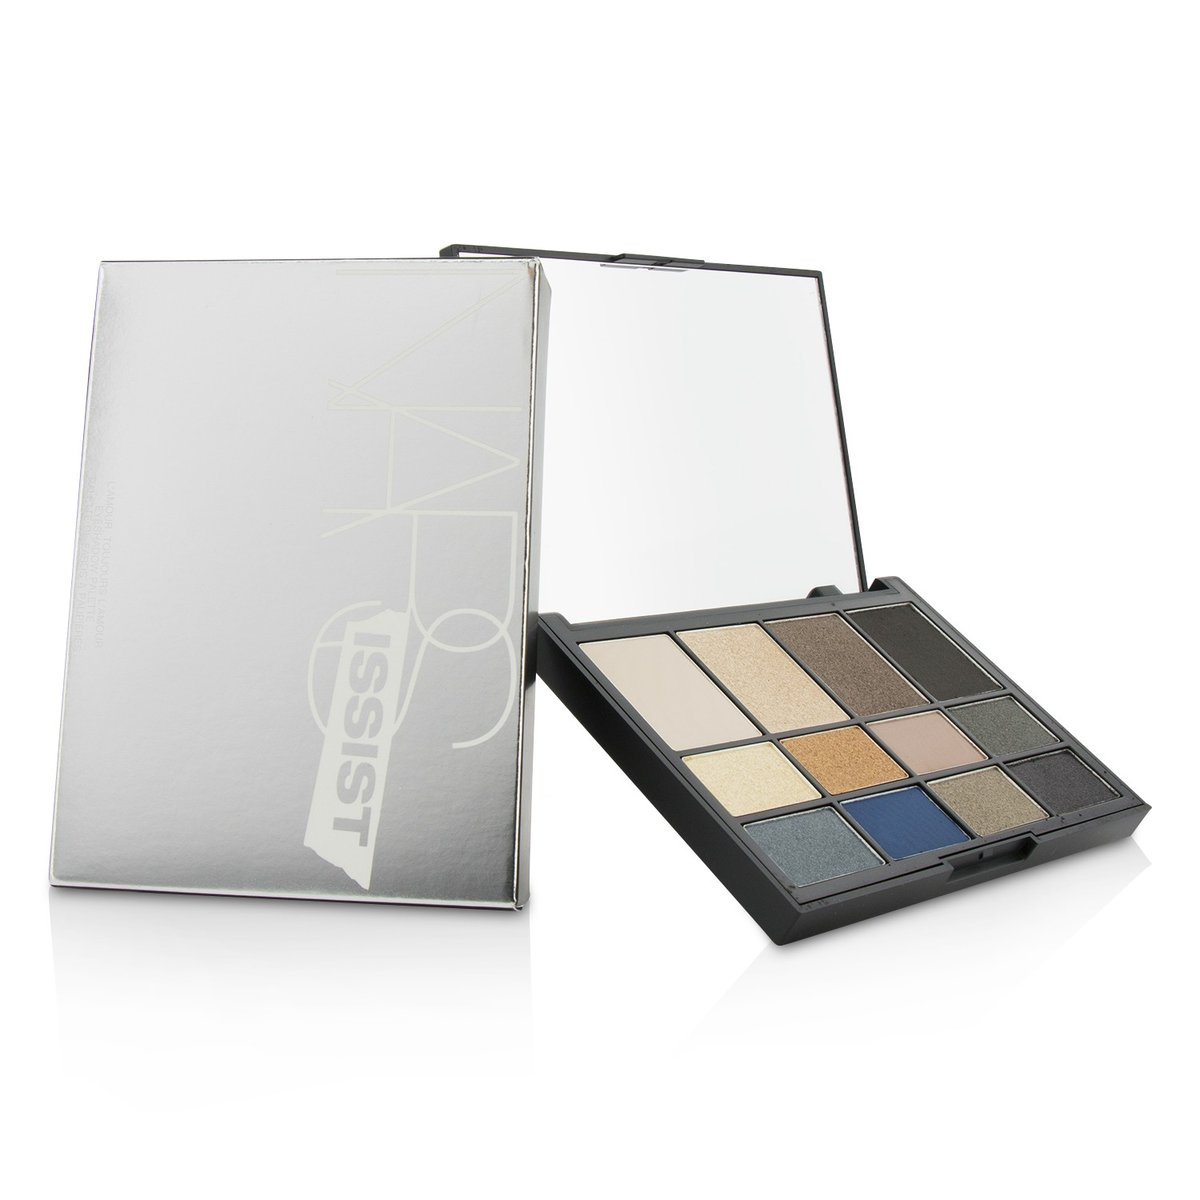 NARSissist L'Amour, Toujours L'Amour Eyeshadow Palette (12x Eyeshadow) 24.8g/0.84oz - [Parallel Import Product]